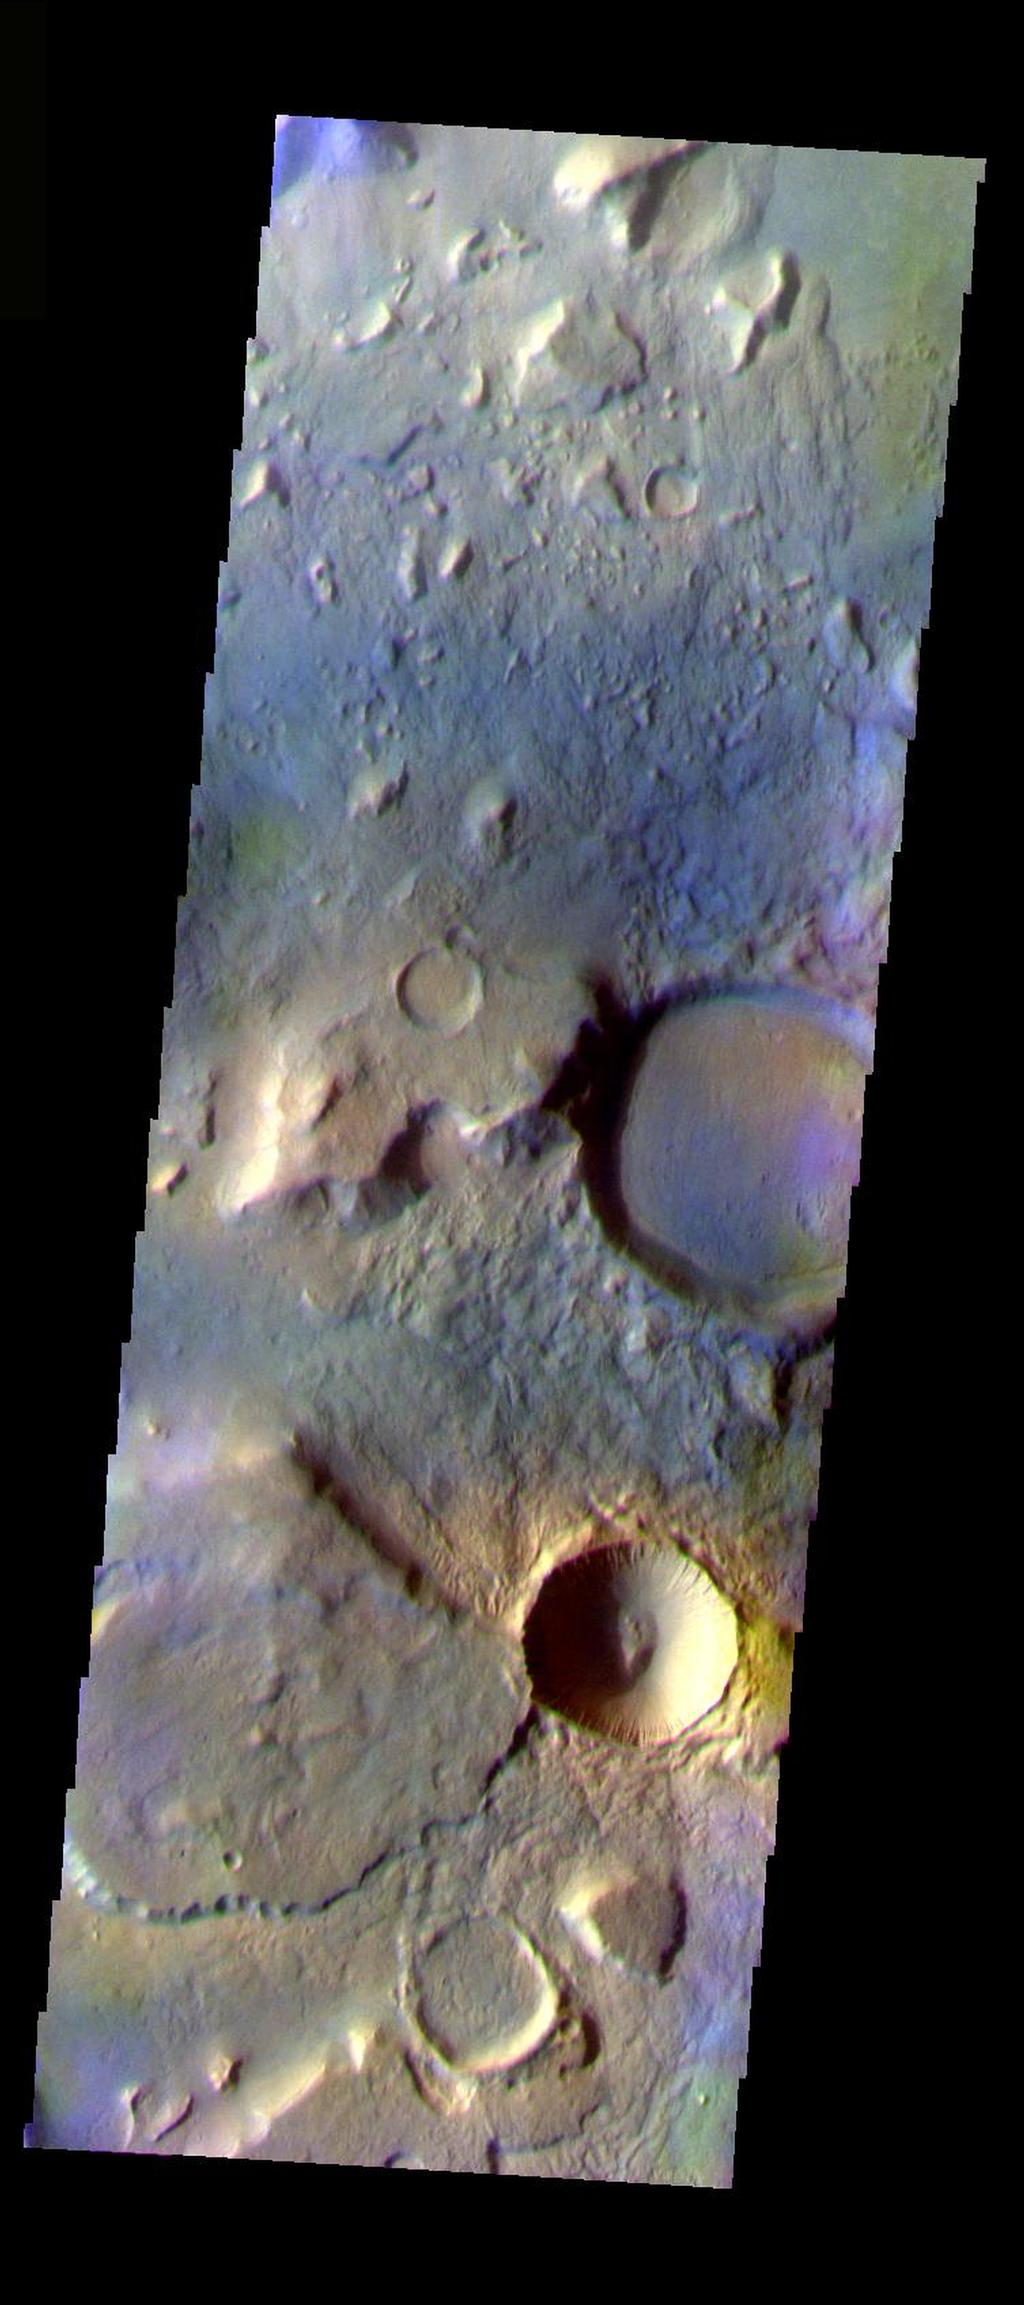 This false color image shows a region with craters of different ages located at the margin of Acidalia Planitia. This image was collected during the Northern Spring season. The THEMIS VIS camera is capable of capturing color images of the Martian surface using five different color filters. In this mode of operation, the spatial resolution and coverage of the image must be reduced to accommodate the additional data volume produced from using multiple filters. To make a color image, three of the five filter images (each in grayscale) are selected. Each is contrast enhanced and then converted to a red, green, or blue intensity image. These three images are then combined to produce a full color, single image. Because the THEMIS color filters don't span the full range of colors seen by the human eye, a color THEMIS image does not represent true color. Also, because each single-filter image is contrast enhanced before inclusion in the three-color image, the apparent color variation of the scene is exaggerated. Nevertheless, the color variation that does appear is representative of some change in color, however subtle, in the actual scene. Note that the long edges of THEMIS color images typically contain color artifacts that do not represent surface variation.